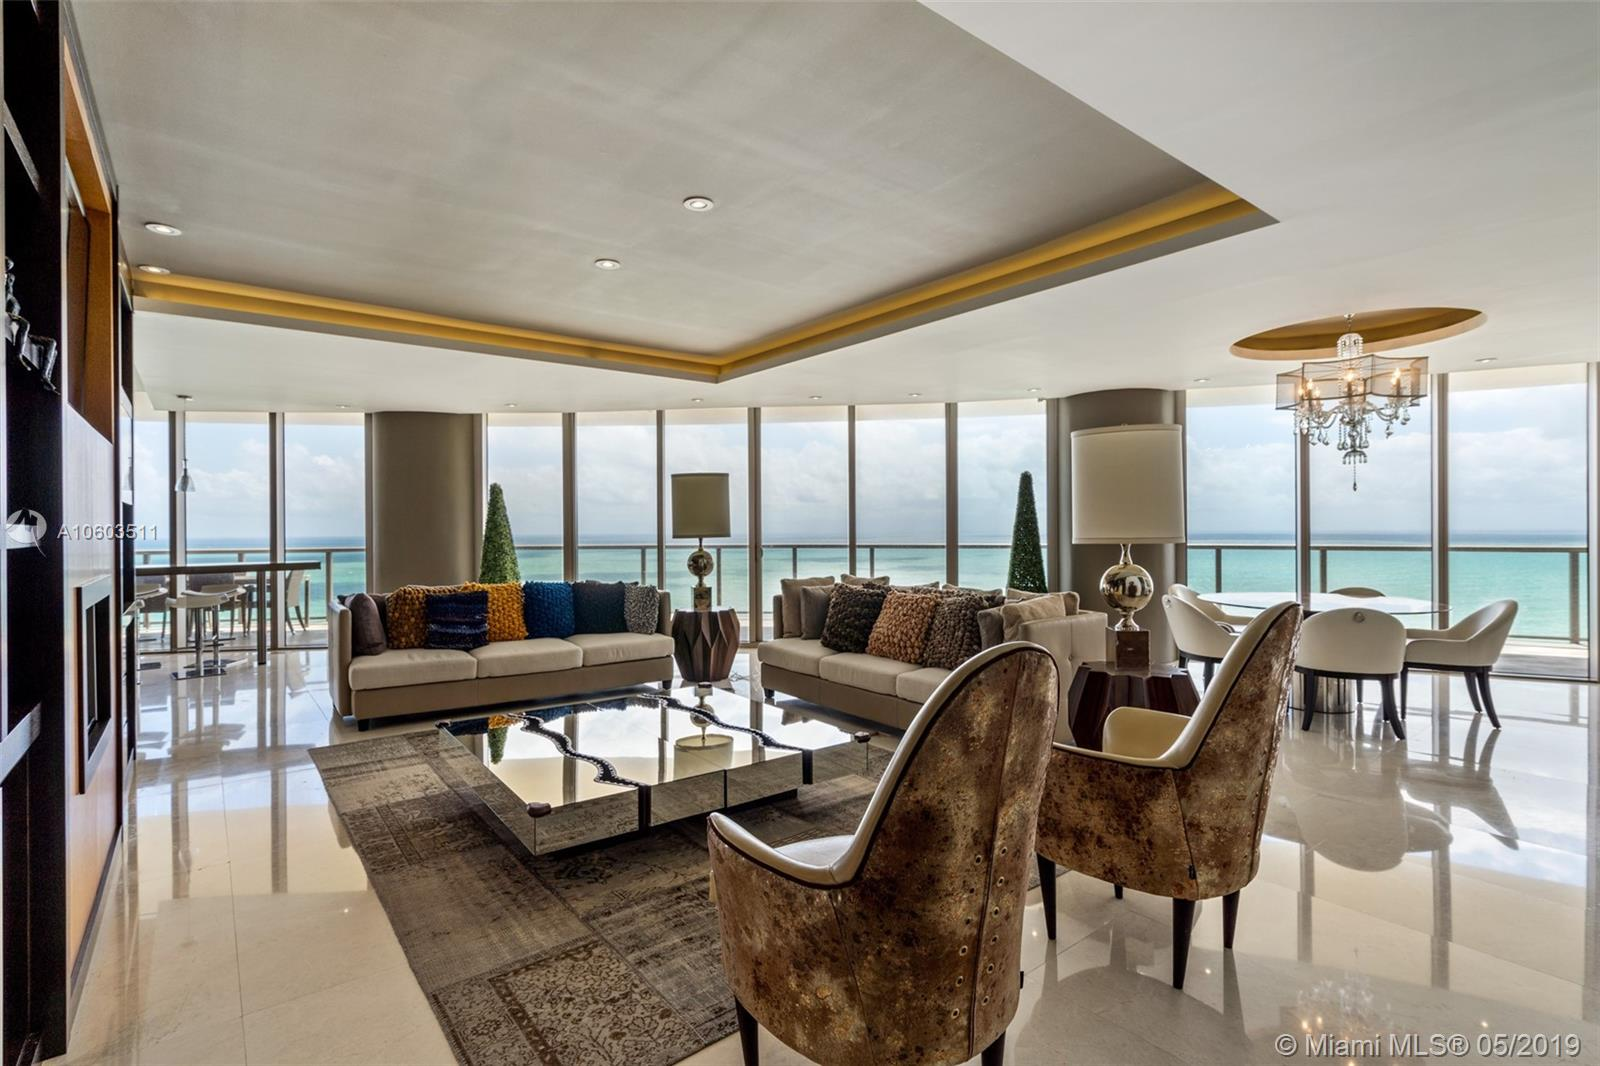 9703 Collins Ave, Unit #2100 Luxury Real Estate